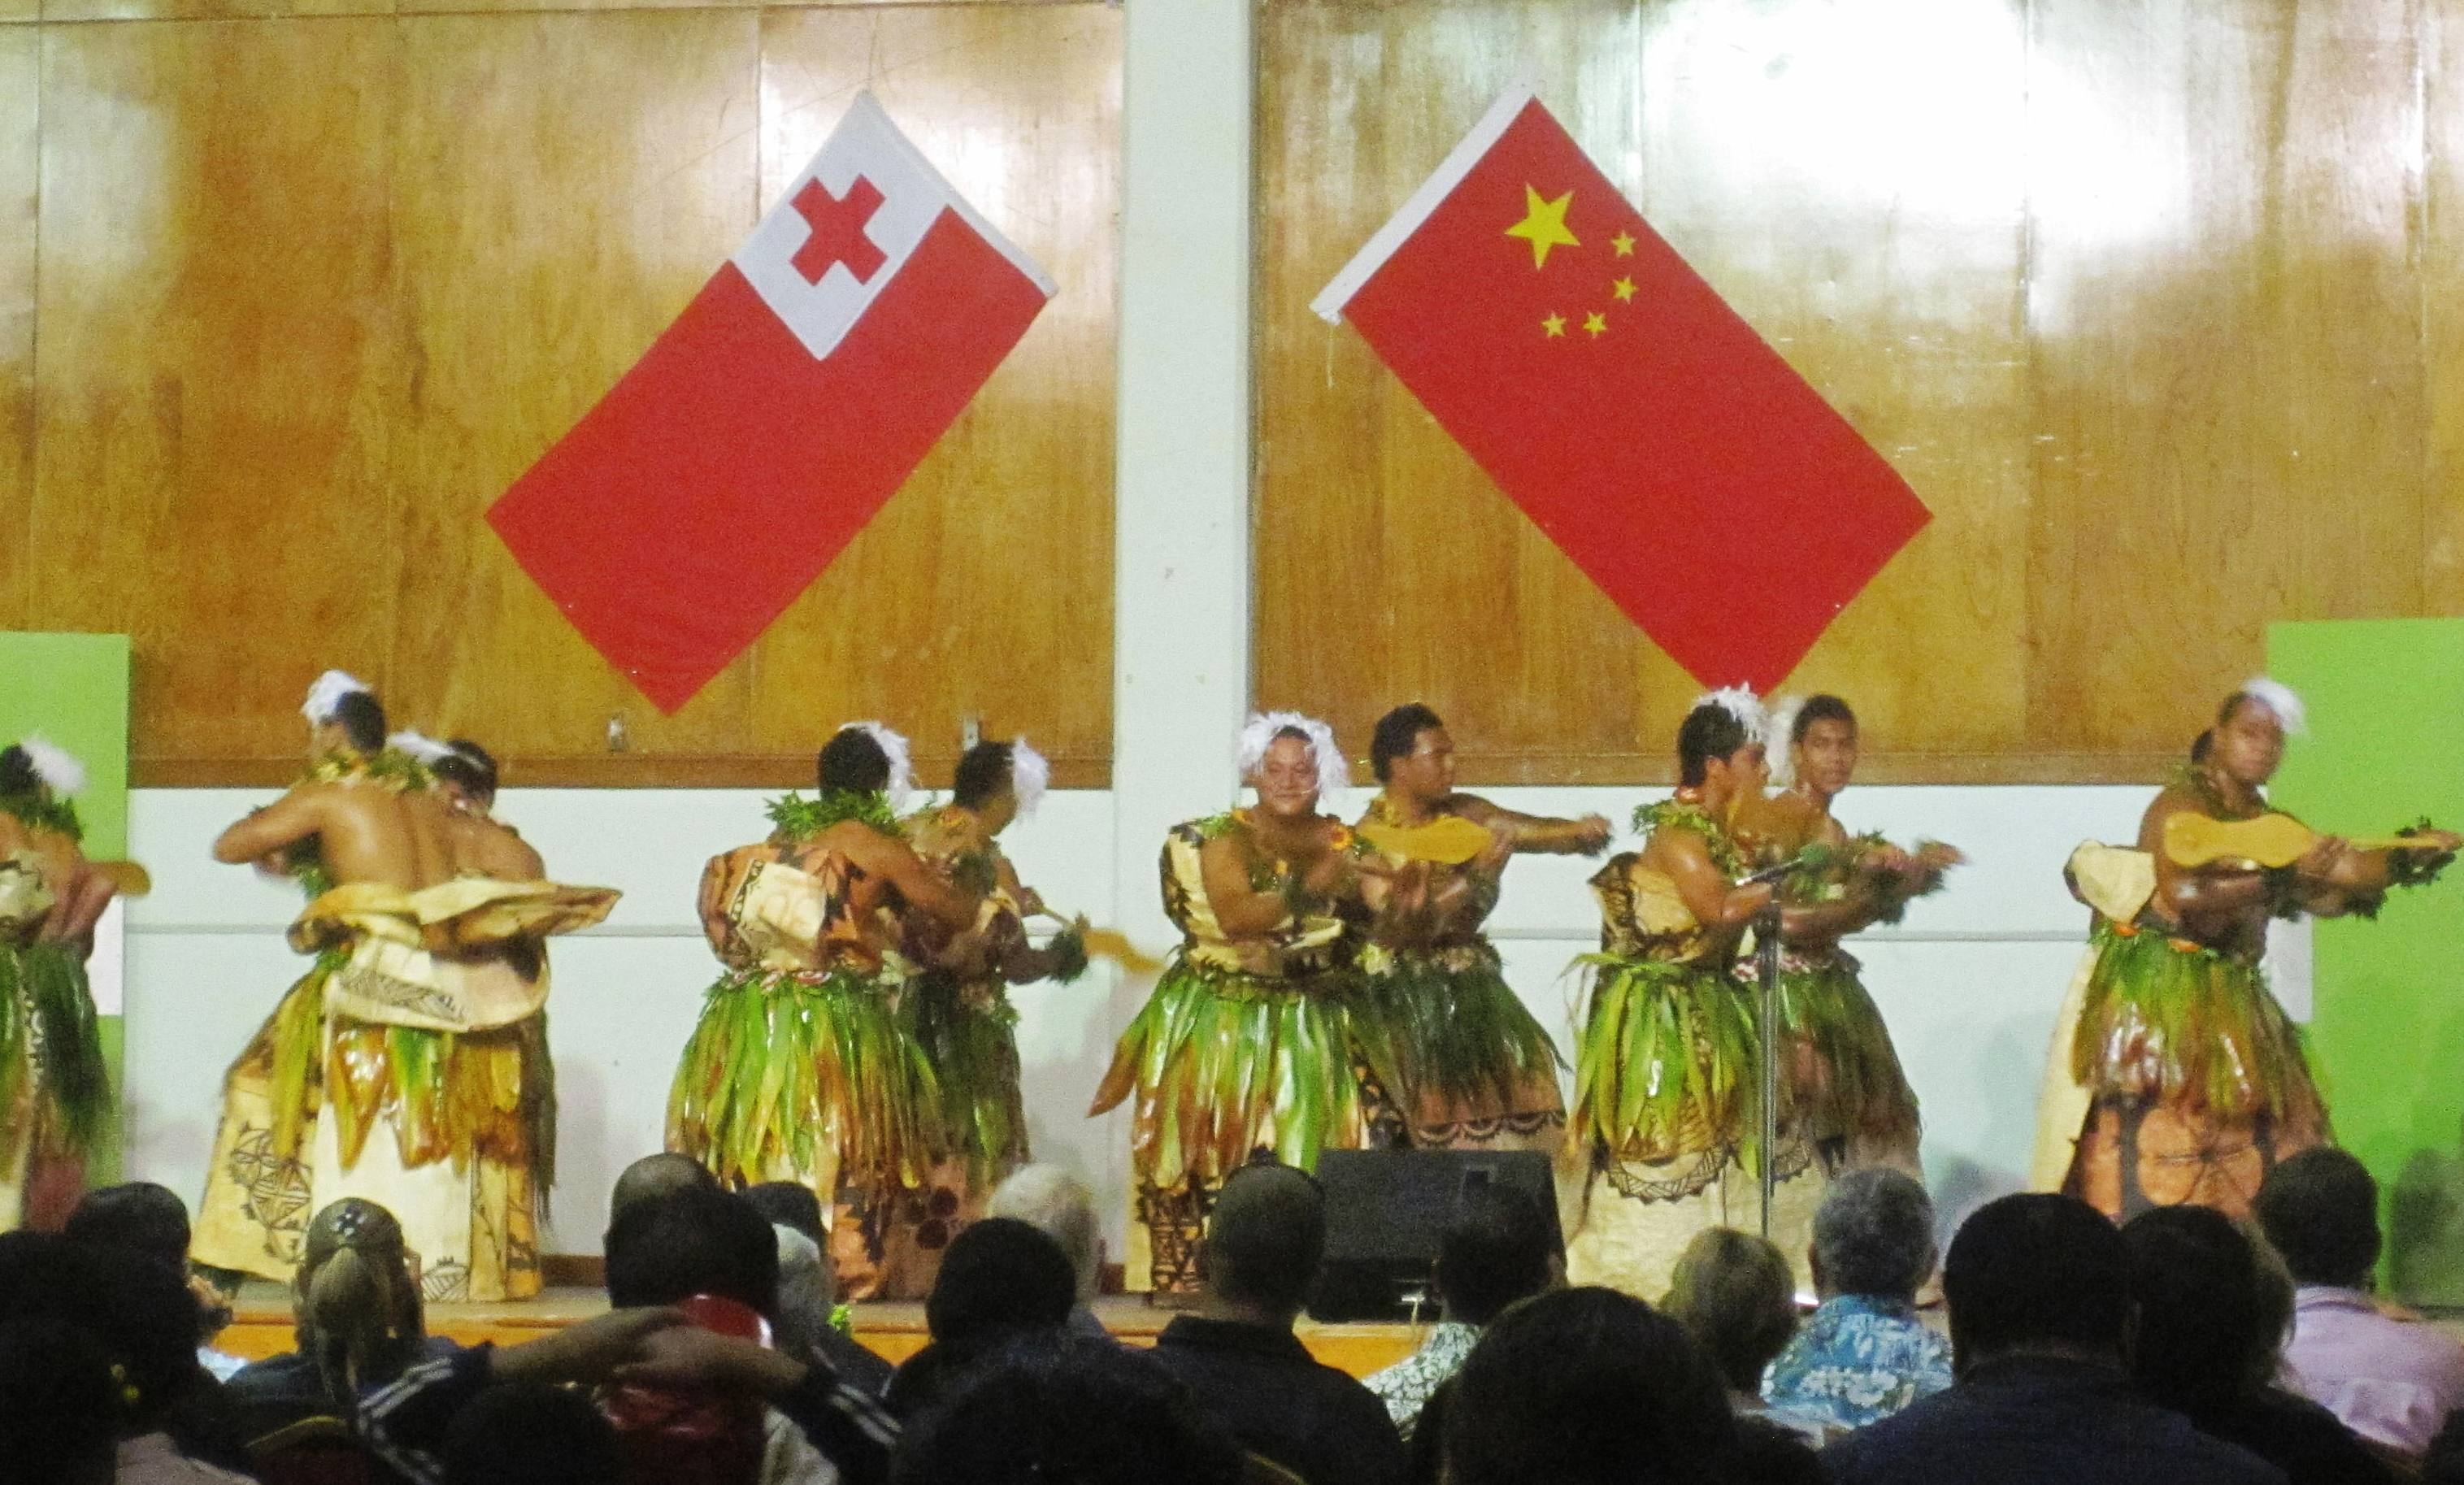 From Tonga to Tianjin ... We're Moving to China!